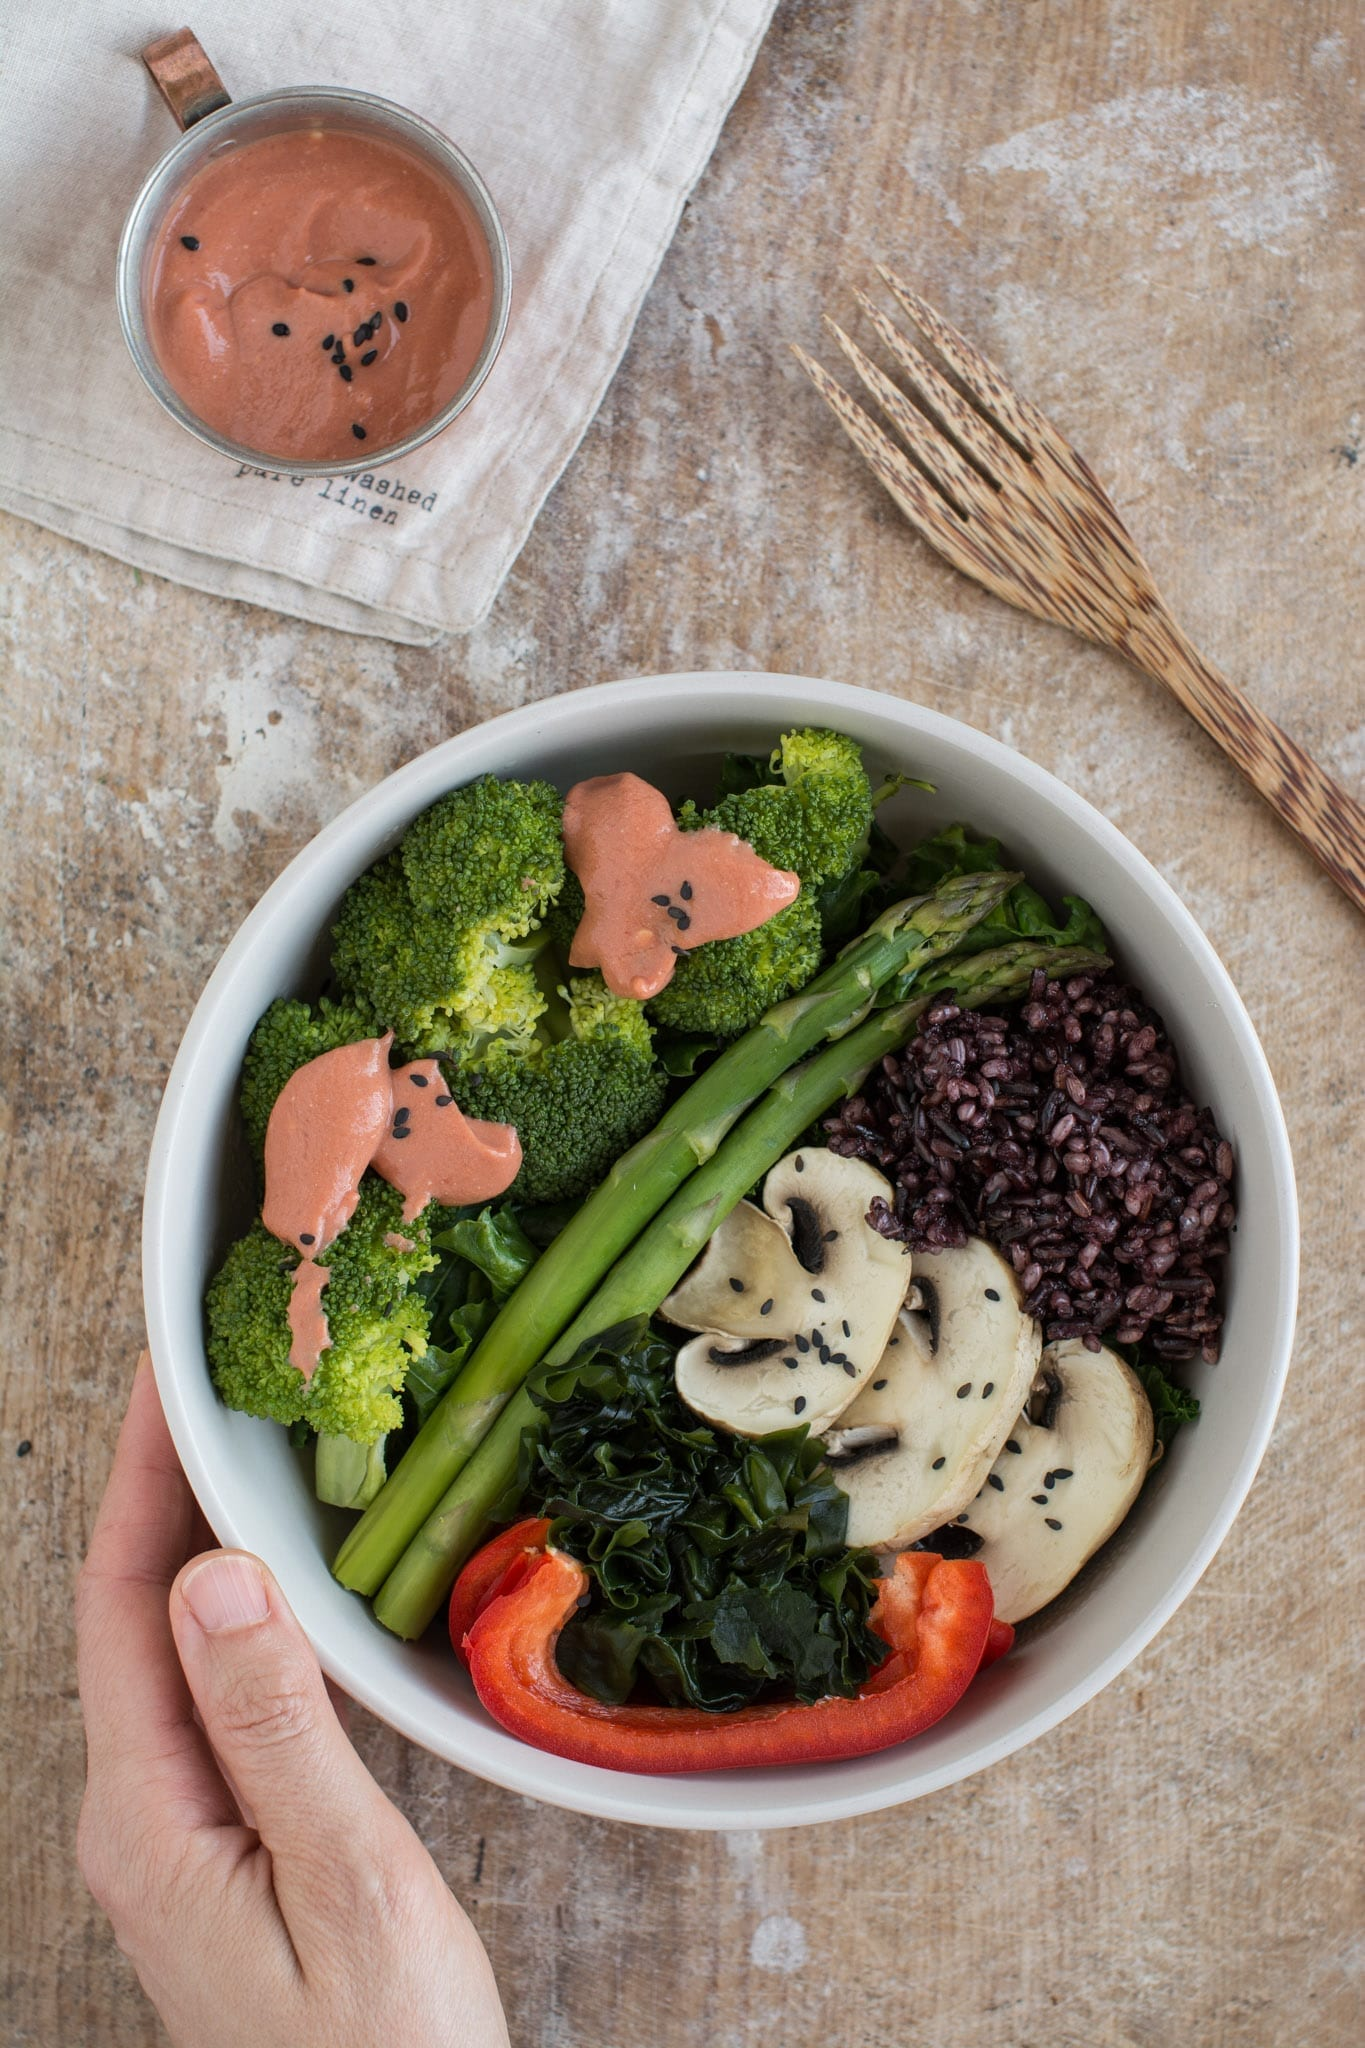 Since I used only raw veggies in my lunch bowl, The dinner will be mostly about cooked greens. Here's steamed kale, broccoli, asparagus, mushrooms, cooked black rice, raw bell pepper. My daily iodine intake in the form of soaked wakame seaweed. And for the dressing I'm combining soy yogurt and tomato paste. You might add some miso or tamari, pepper and spices of choice, but I like it also plain as that. I added such a small amount of rice because my dessert will be grain-based.